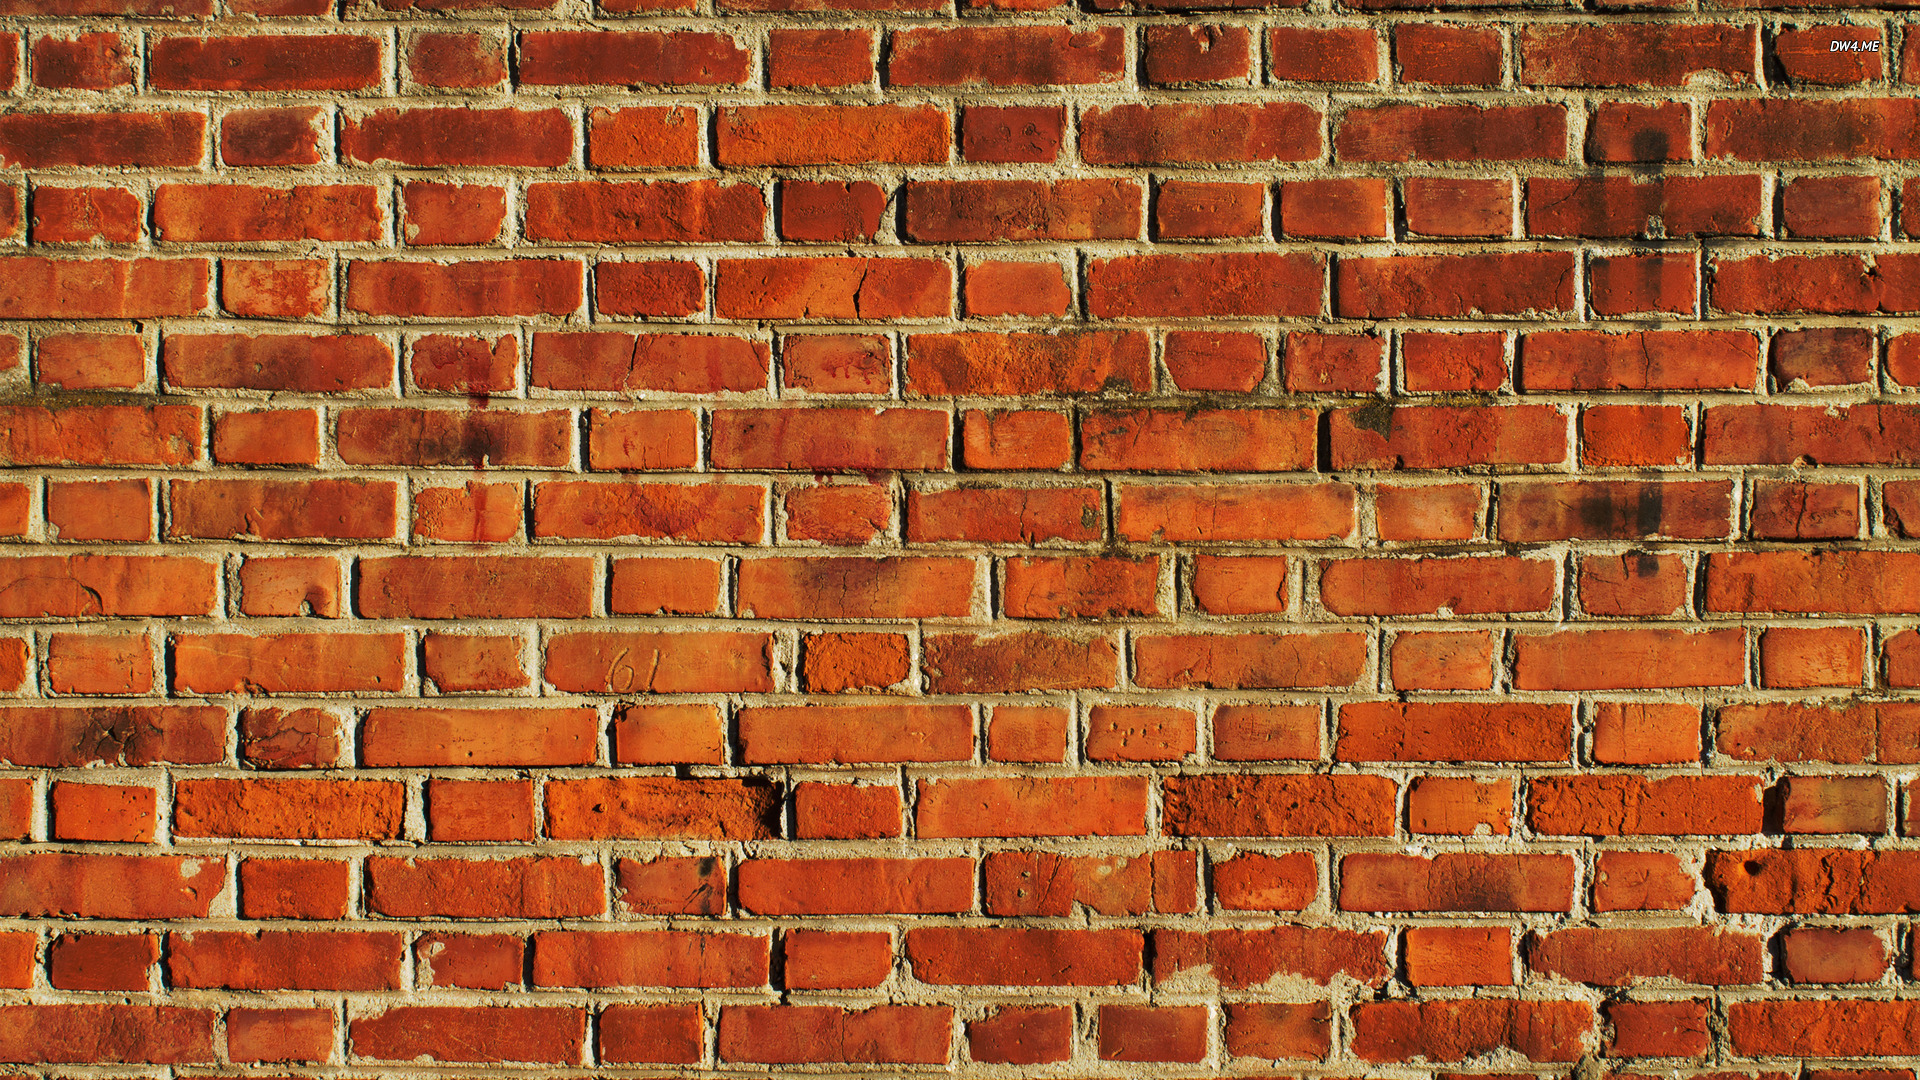 Brick Wallpaper Images